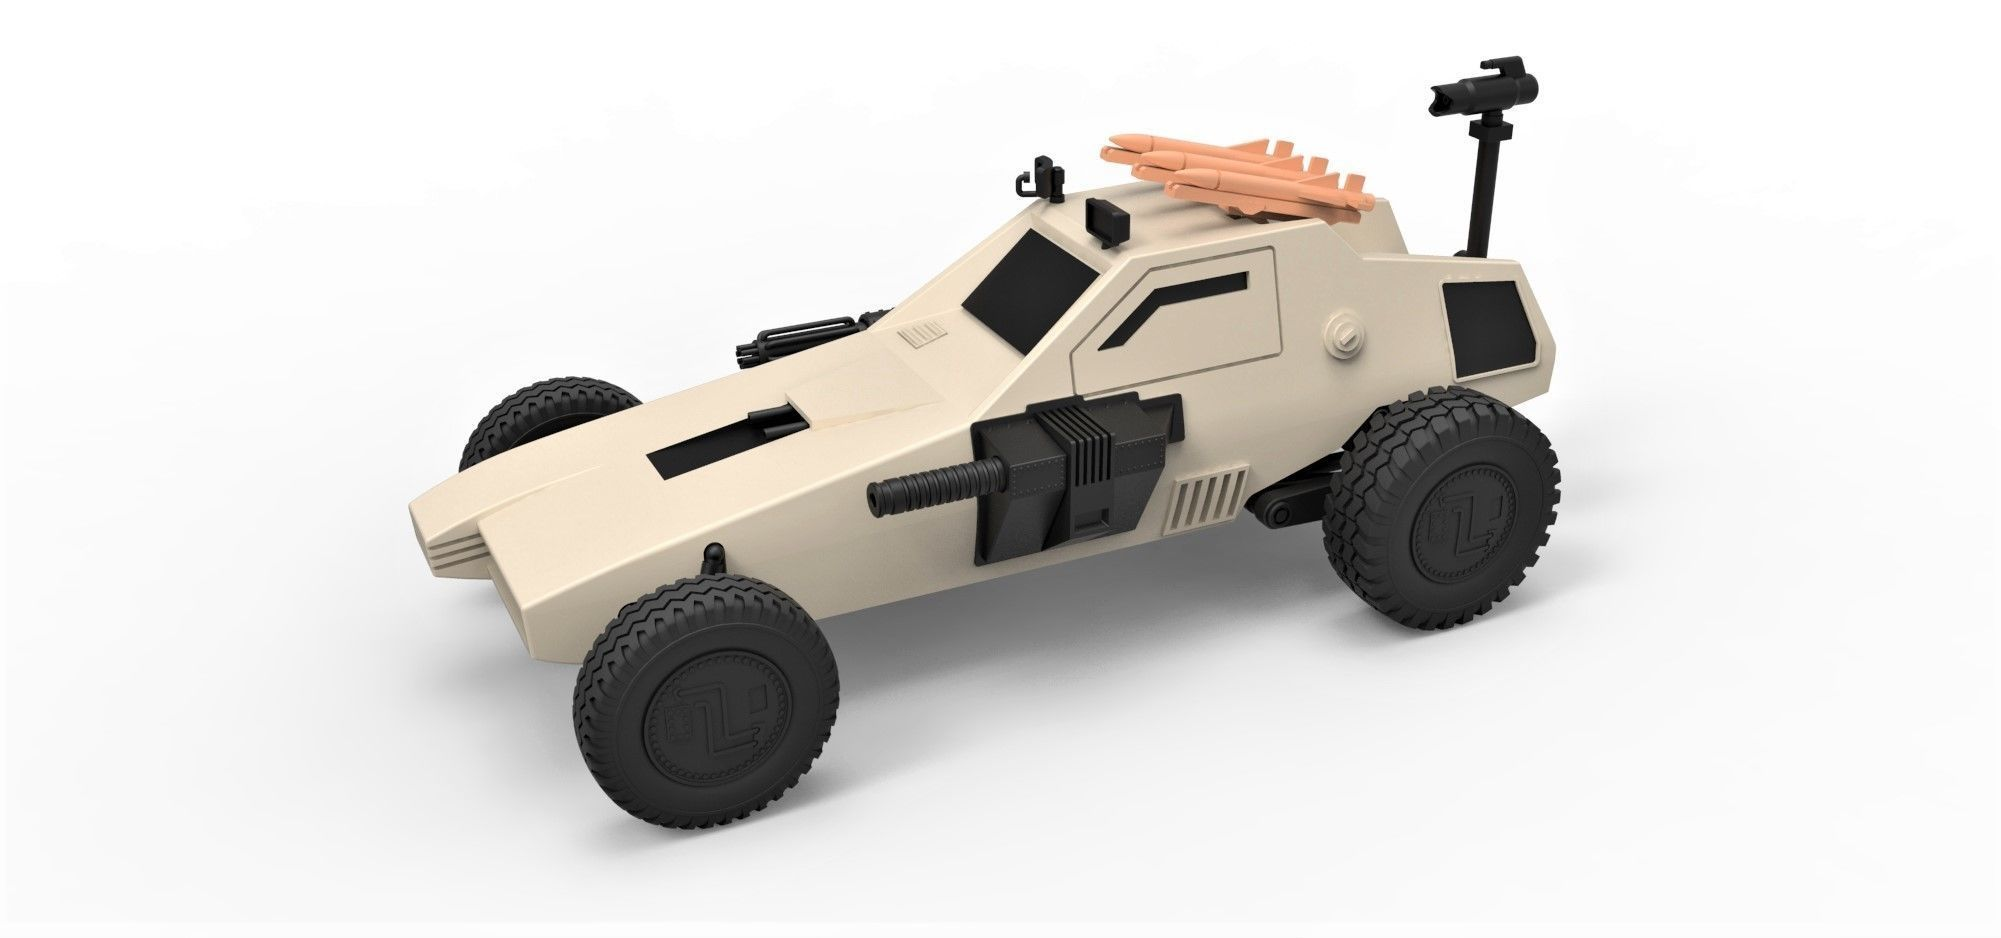 Diecast model Dune buggy from movie Megaforce 1982 Scale 1 to 24